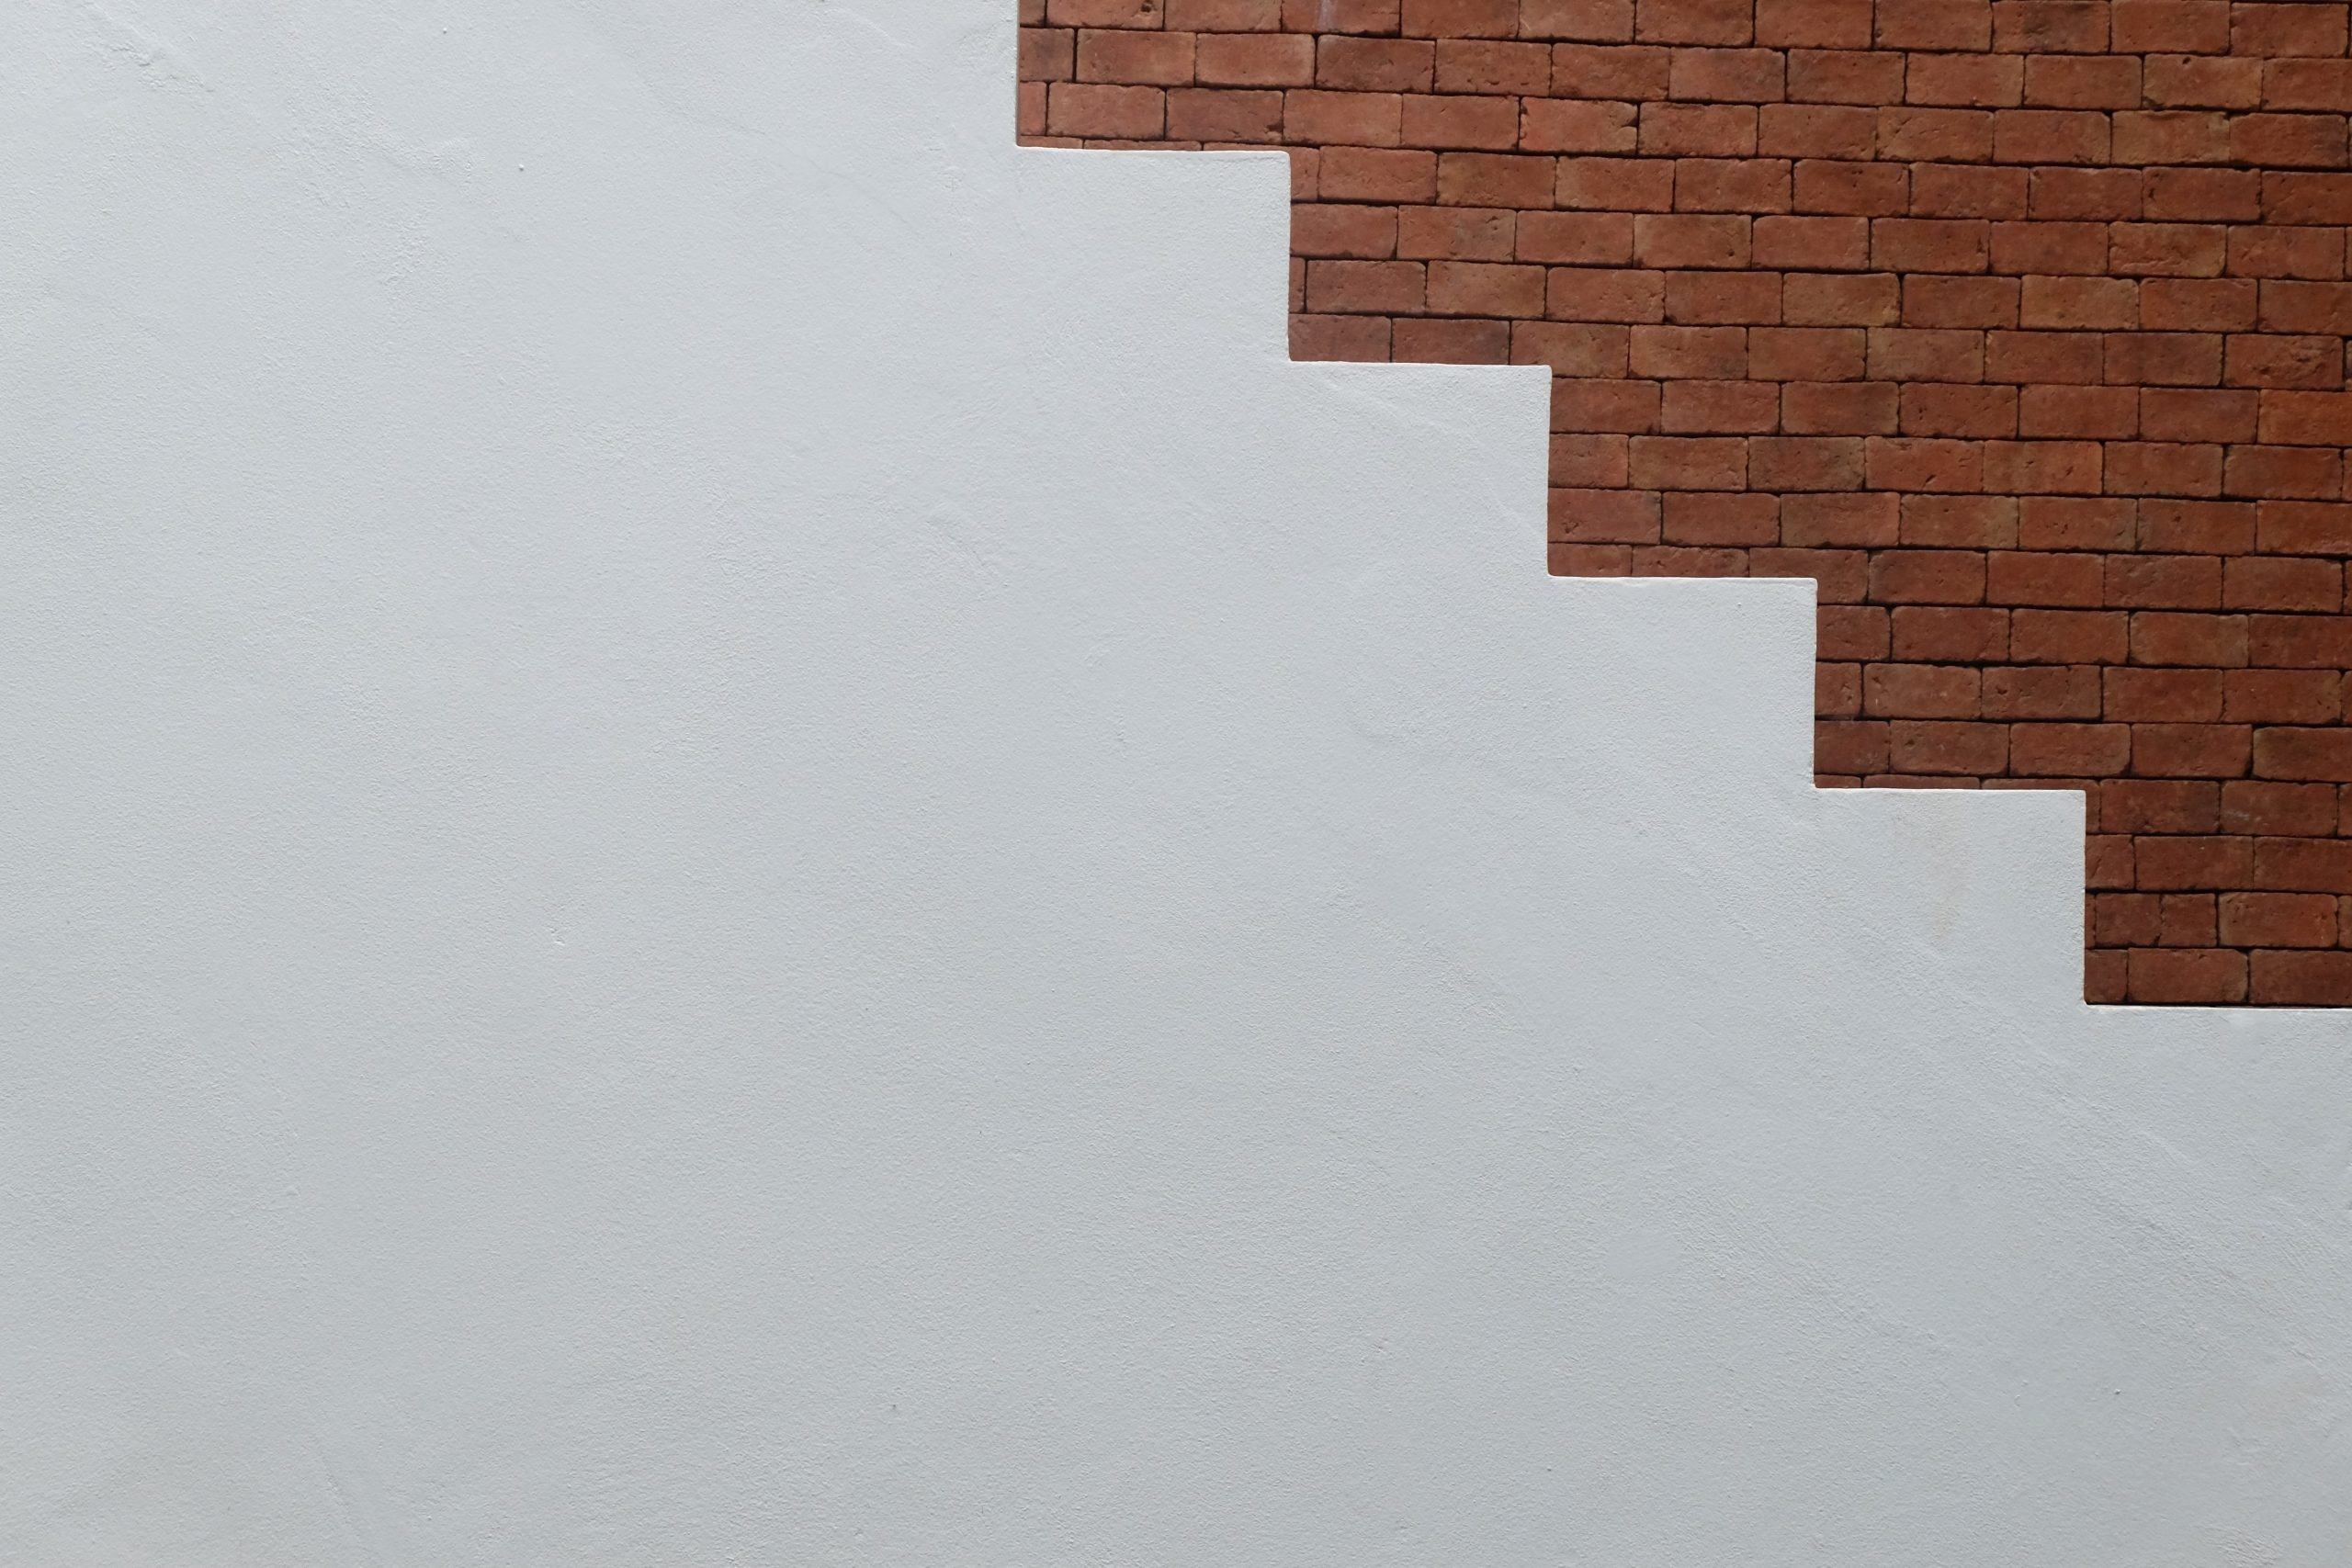 White concrete stairs with the brick background